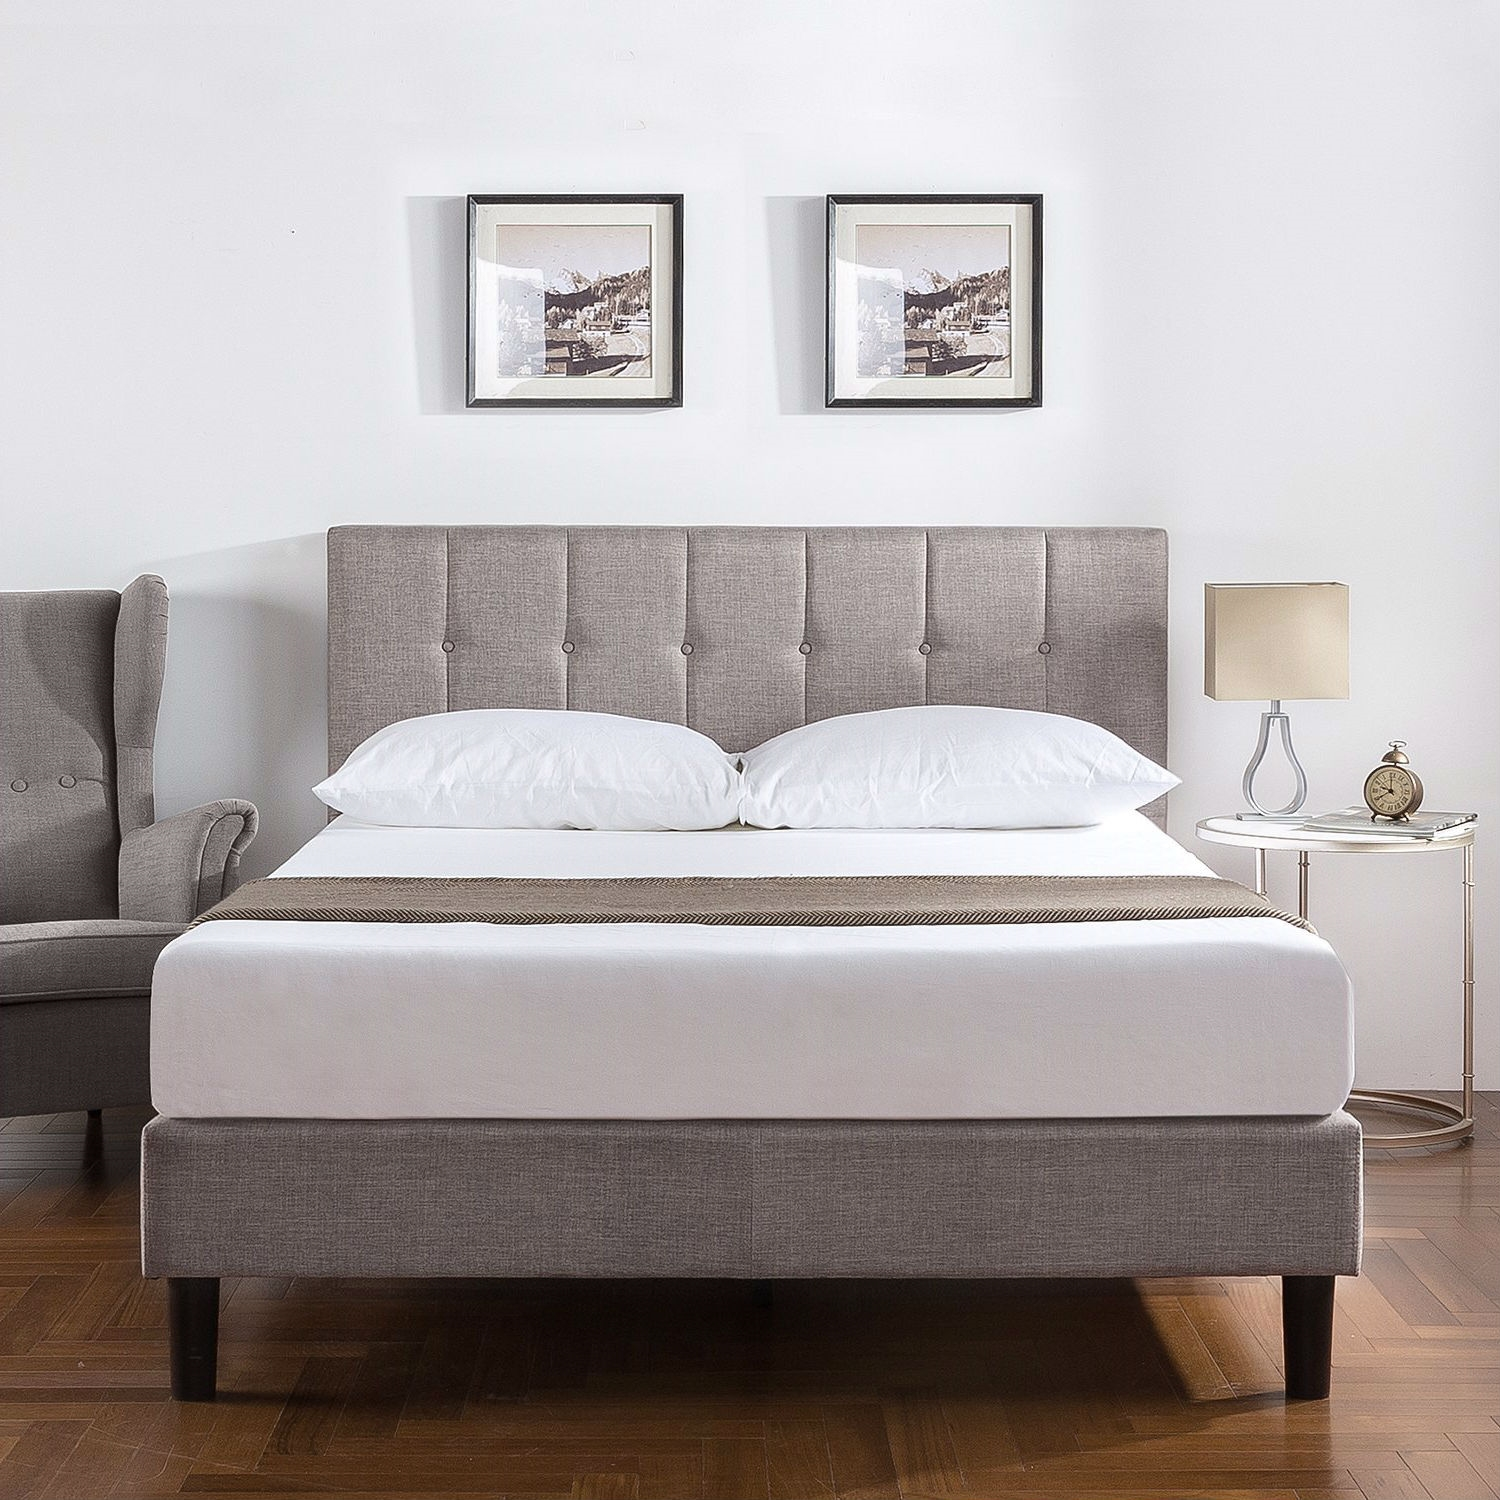 King Medium Grey Upholstered Platform Bed Frame With Button Tufted Headboard Fastfurnishings Com